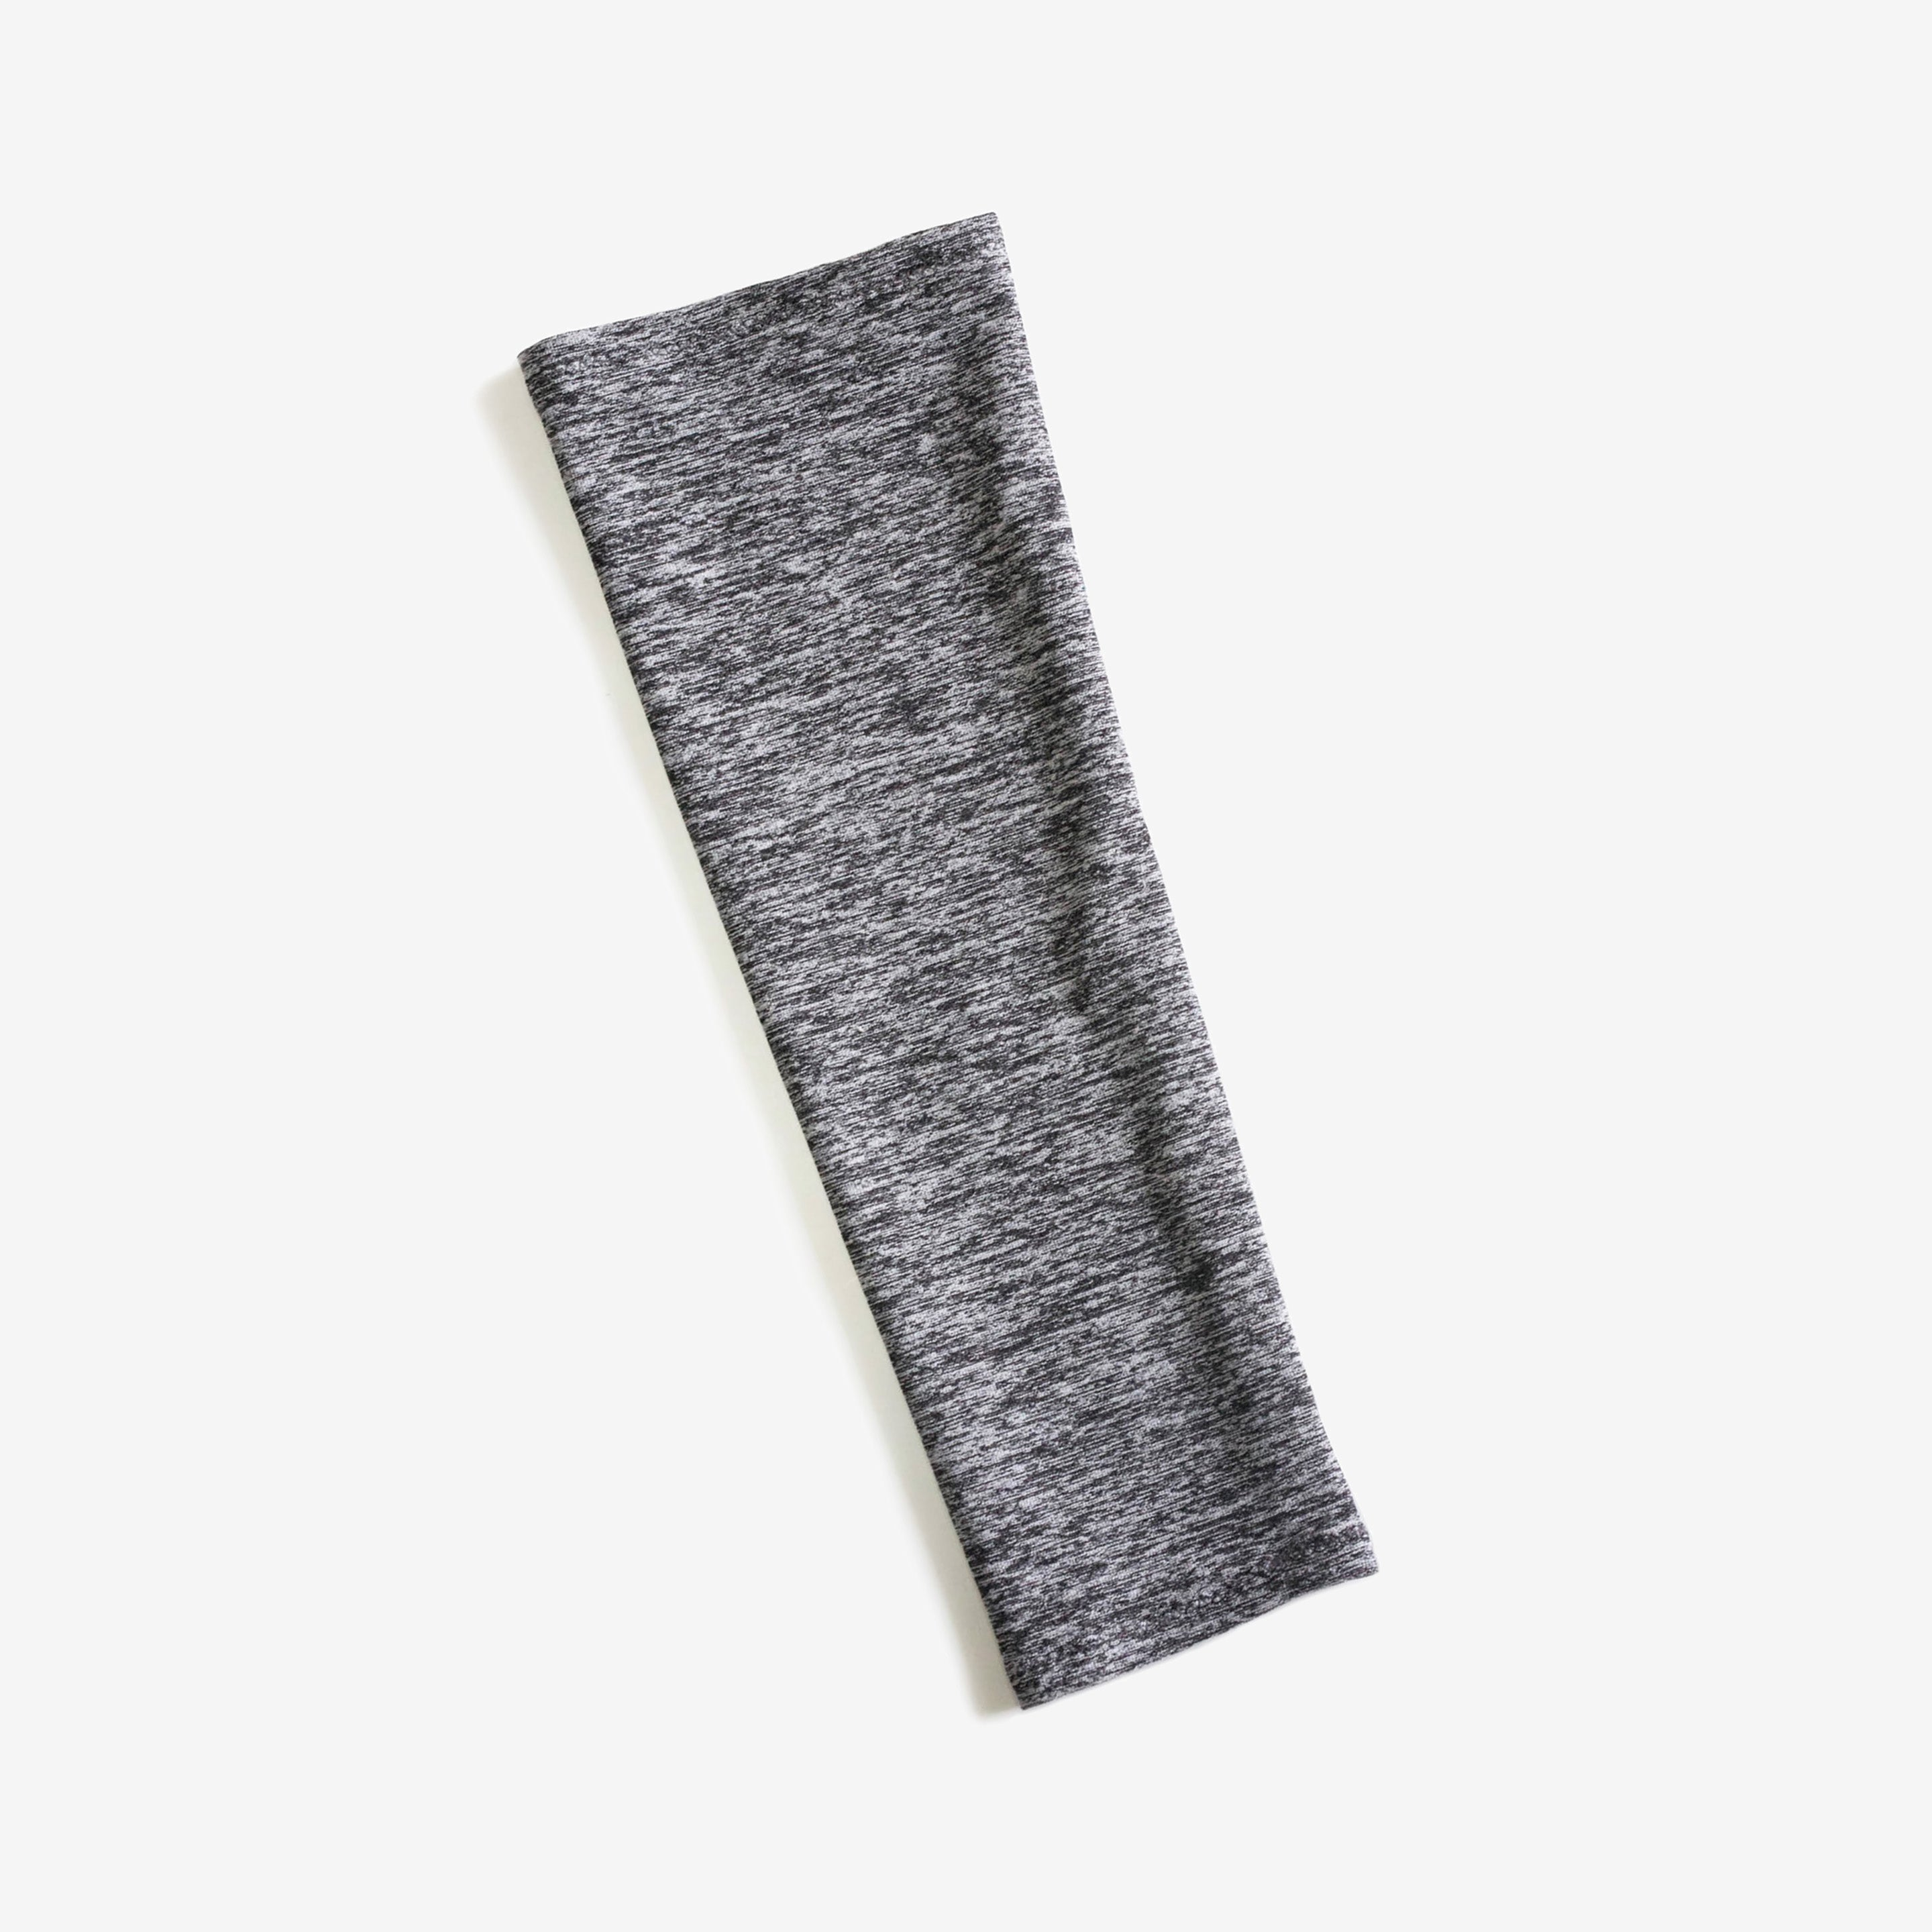 "PICC Line Covers ""SoftSleeve"" (3-Pack Charcoal)"